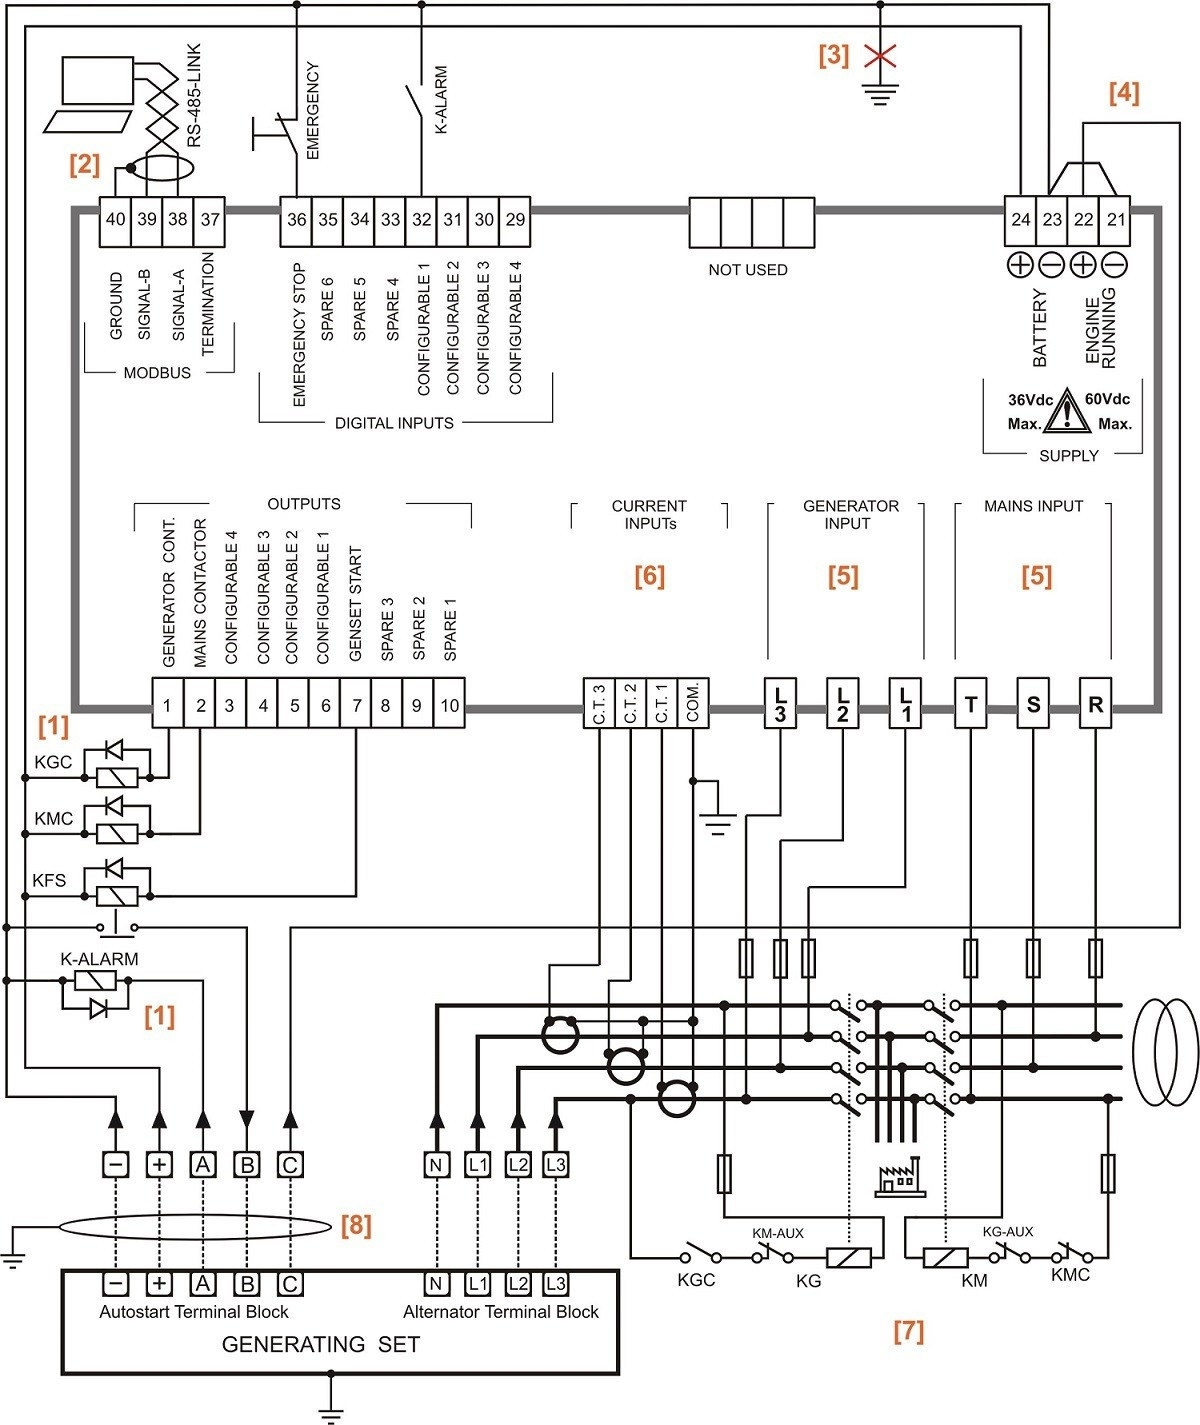 generac rtf 3 phase transfer switch wiring diagram transfer switch wiring schematic | free wiring diagram